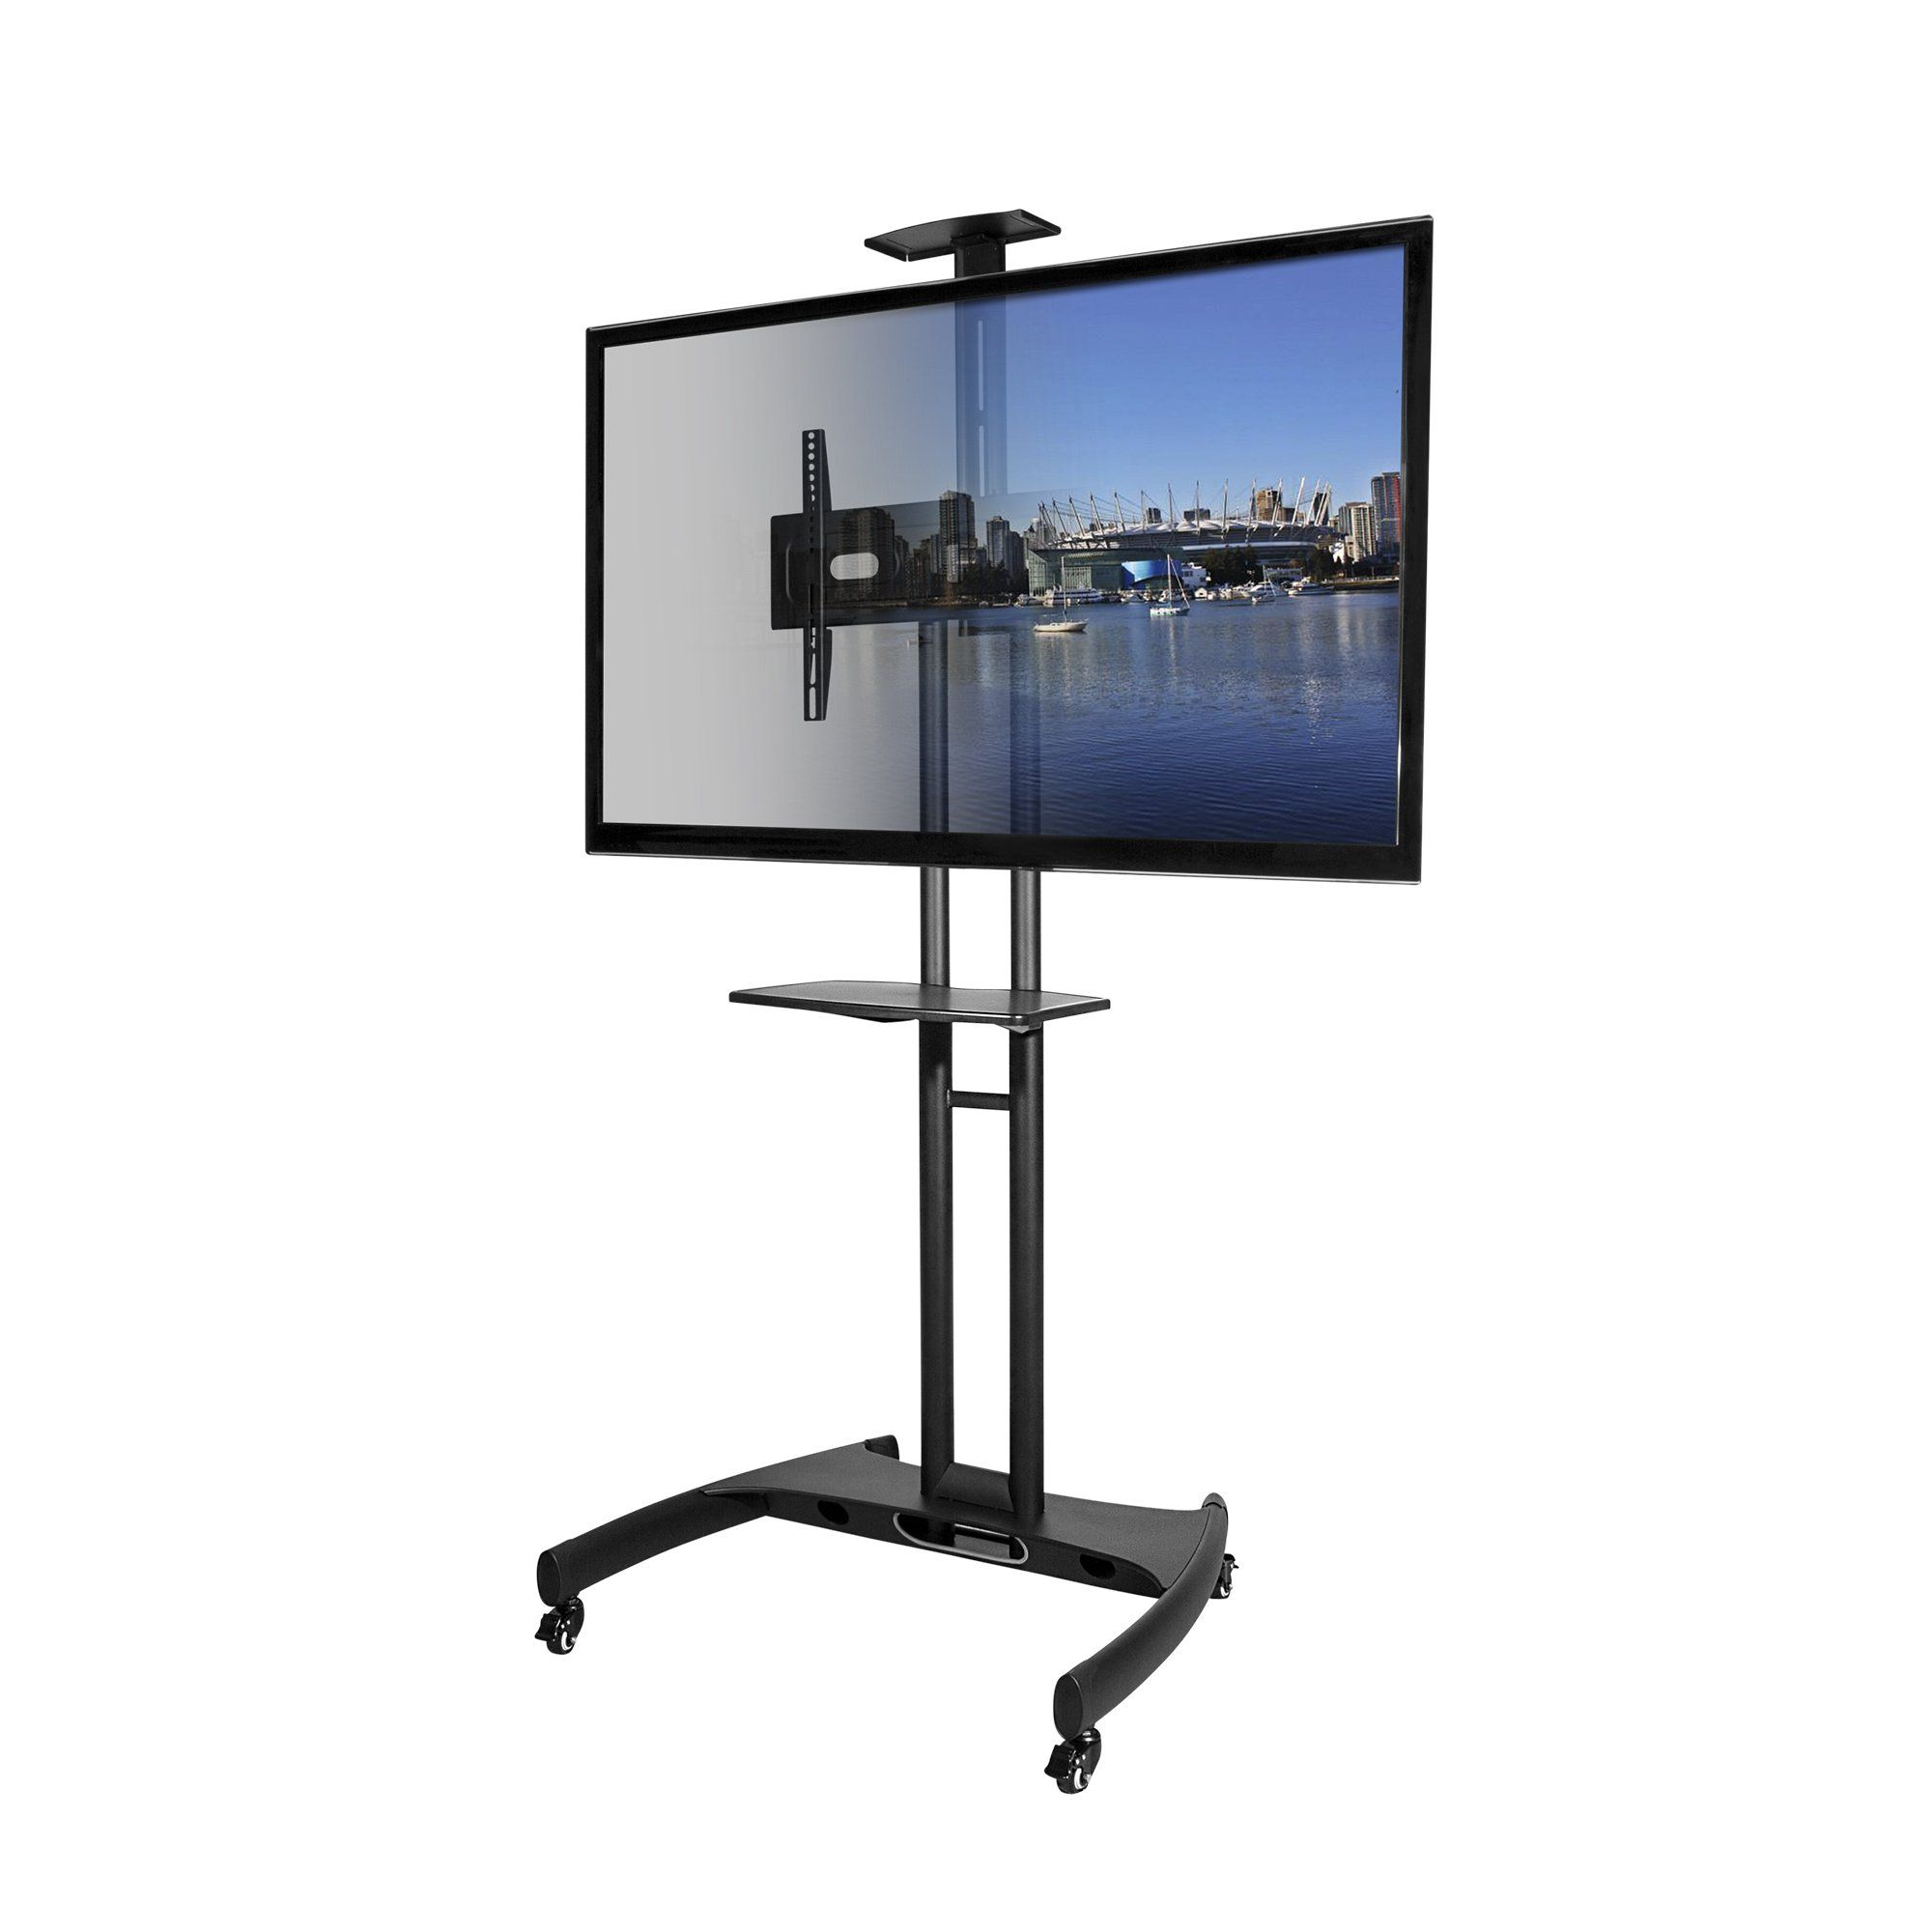 Kanto Mtm65pl Mobile Tv Stand With Mount For 37 To 65 Inch Flat Panel Screens Black Click Image For More Mobile Tv Stand Tv Floor Stand Tv Stand With Mount